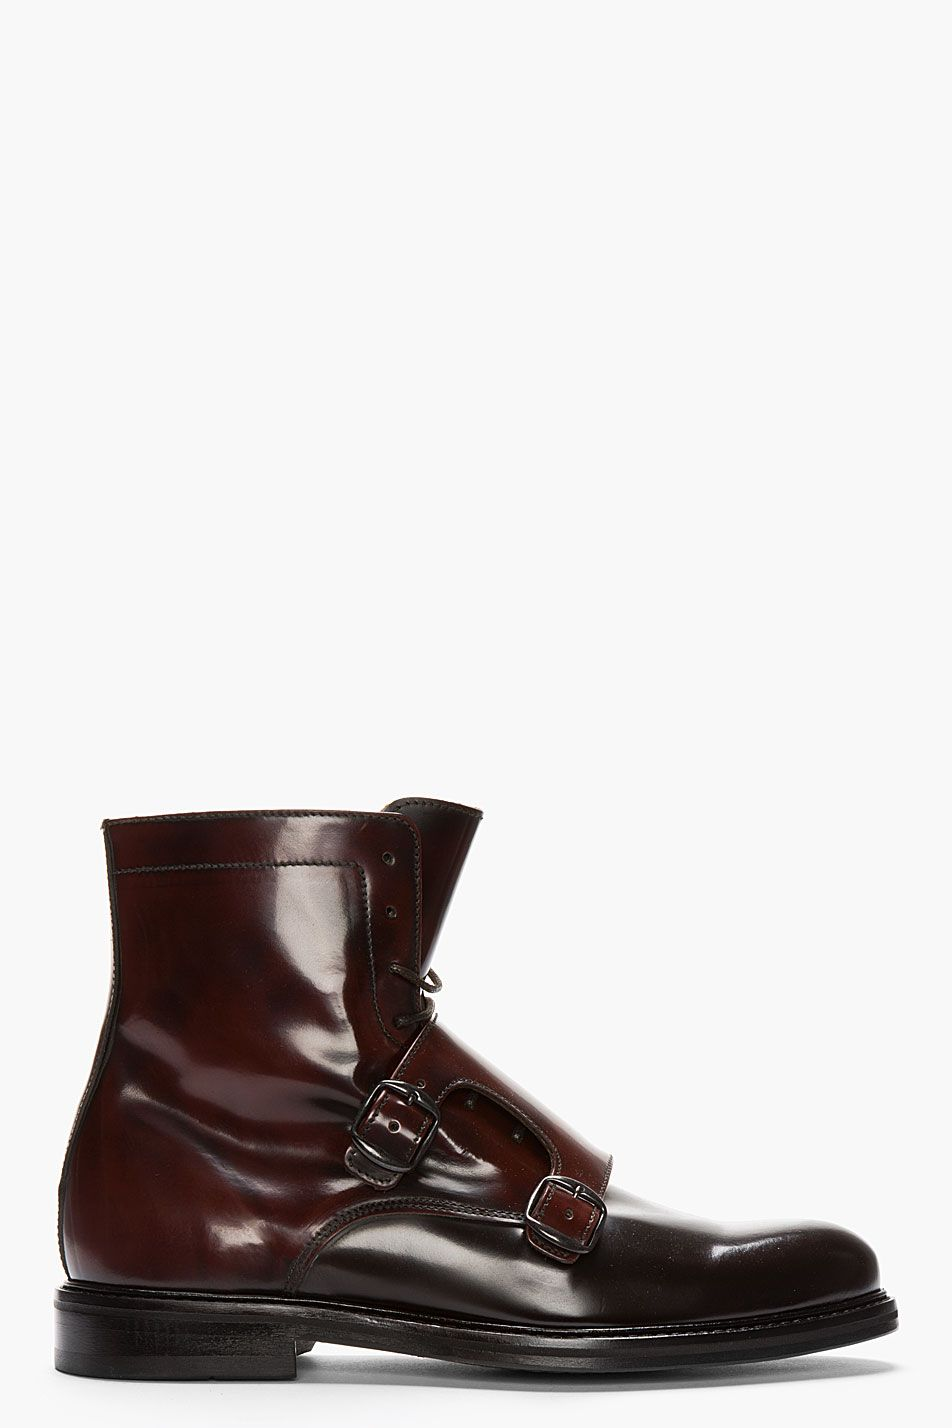 Carven Mahogany Two Tone Monk Strap Boots Men Fashion